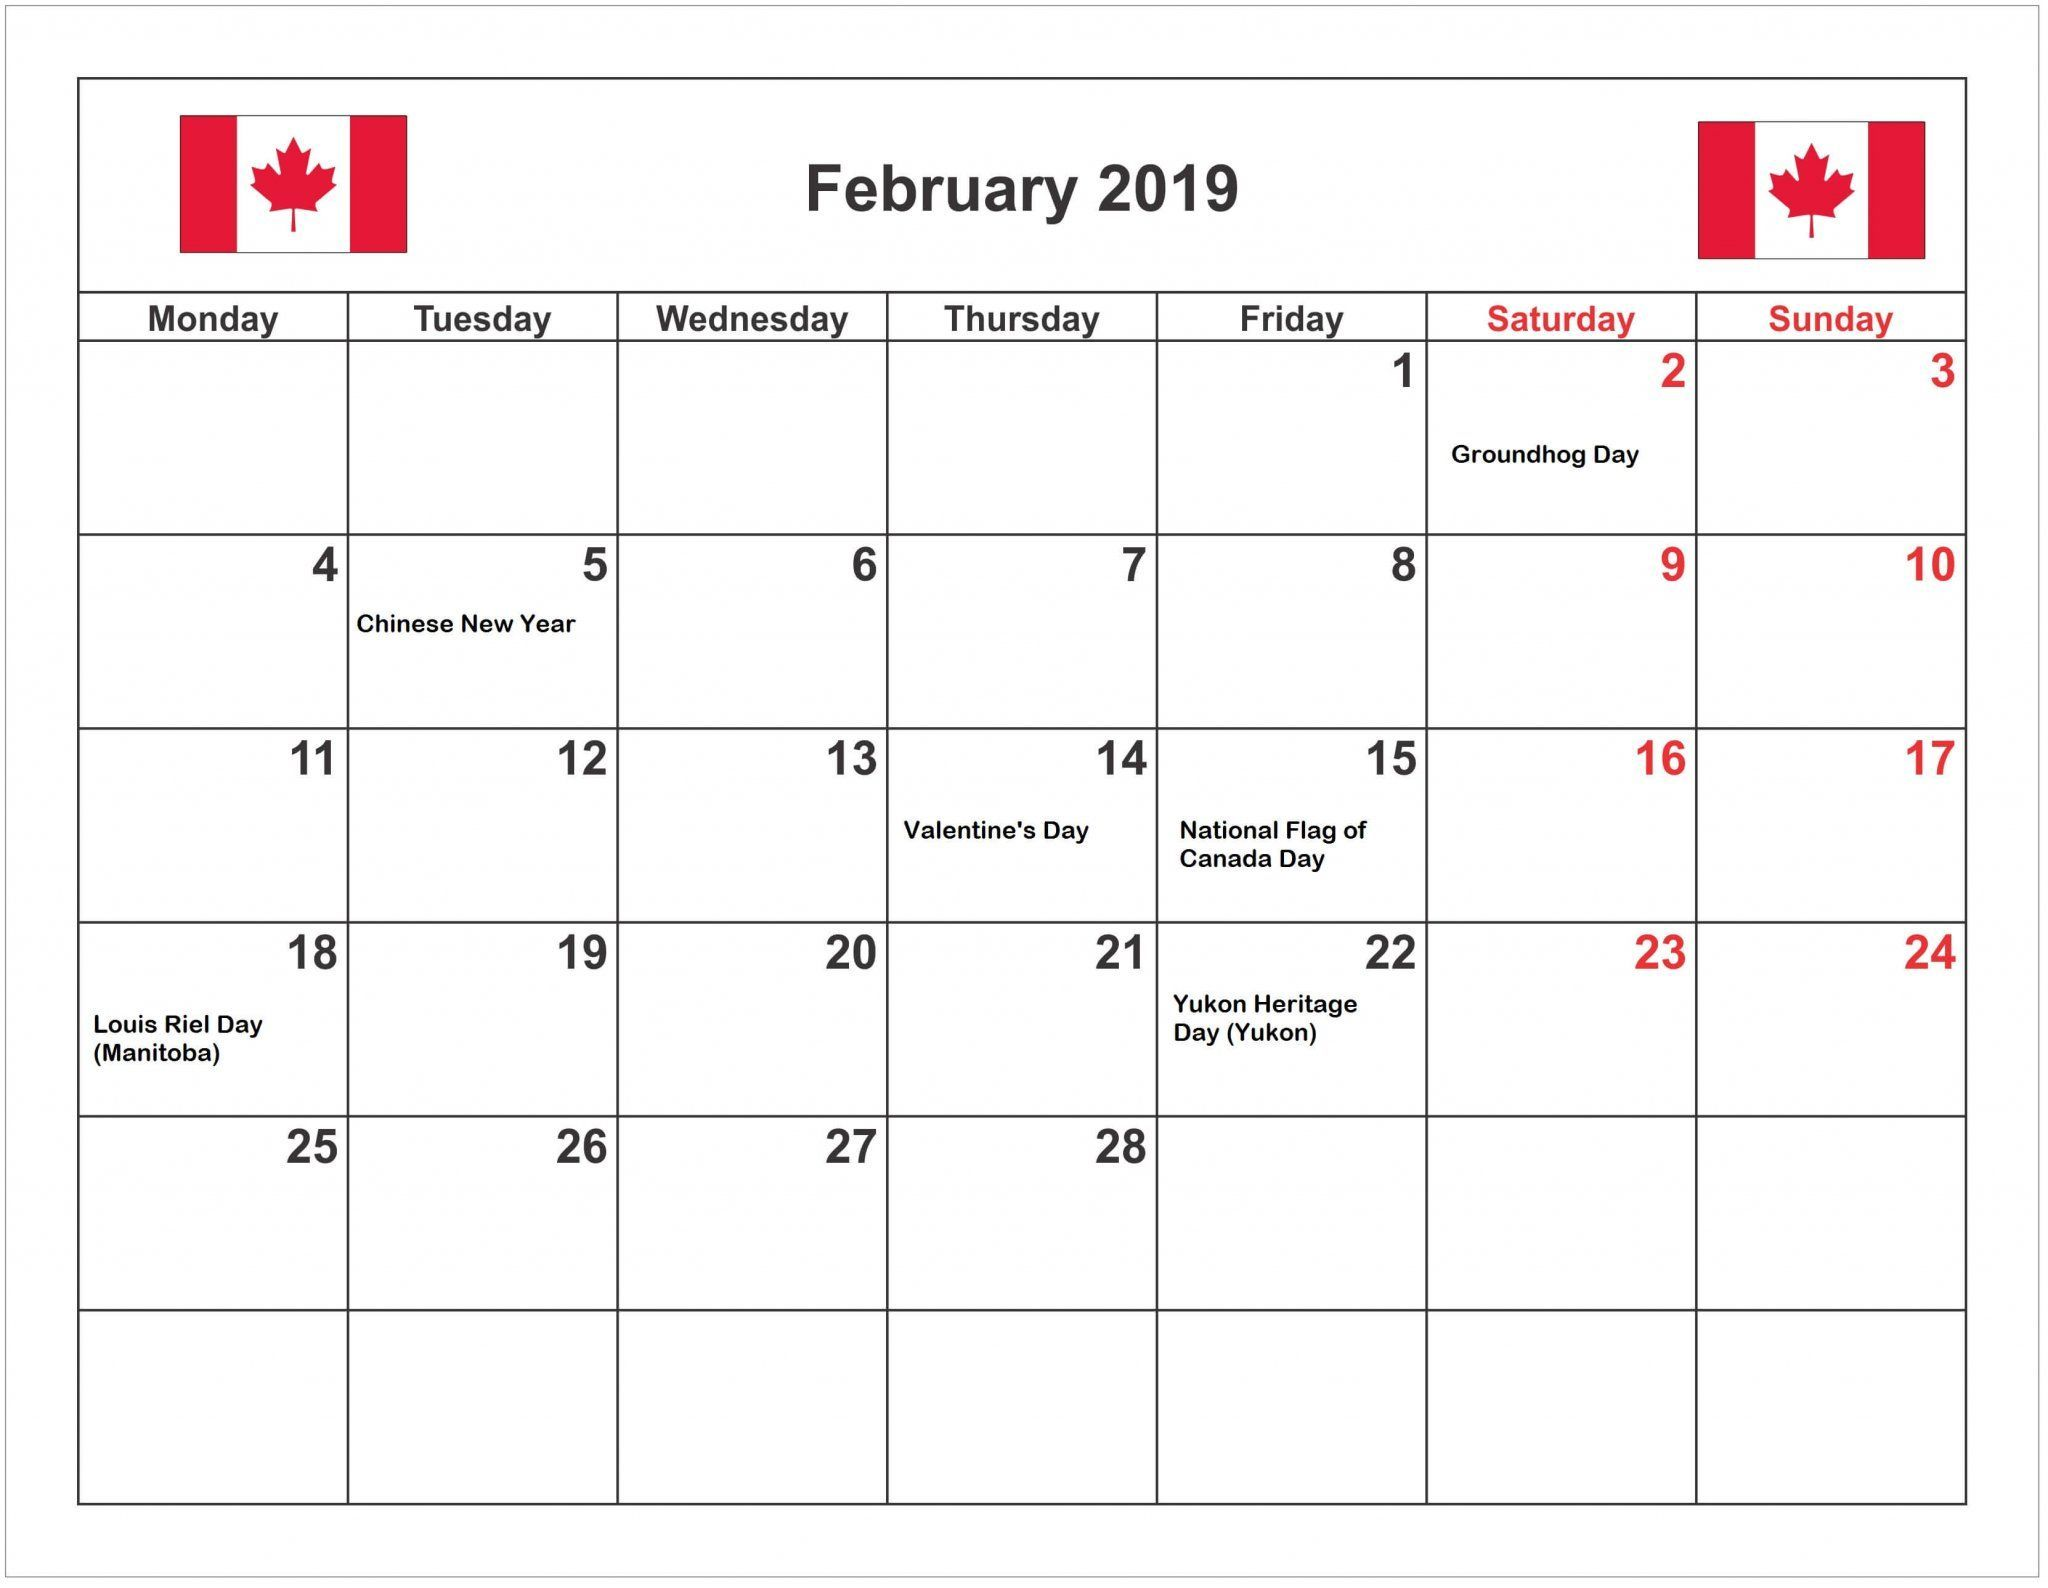 2019 Monthly Calendar Canada February 2019 Calendar With Holidays Canada | Blank February 2019